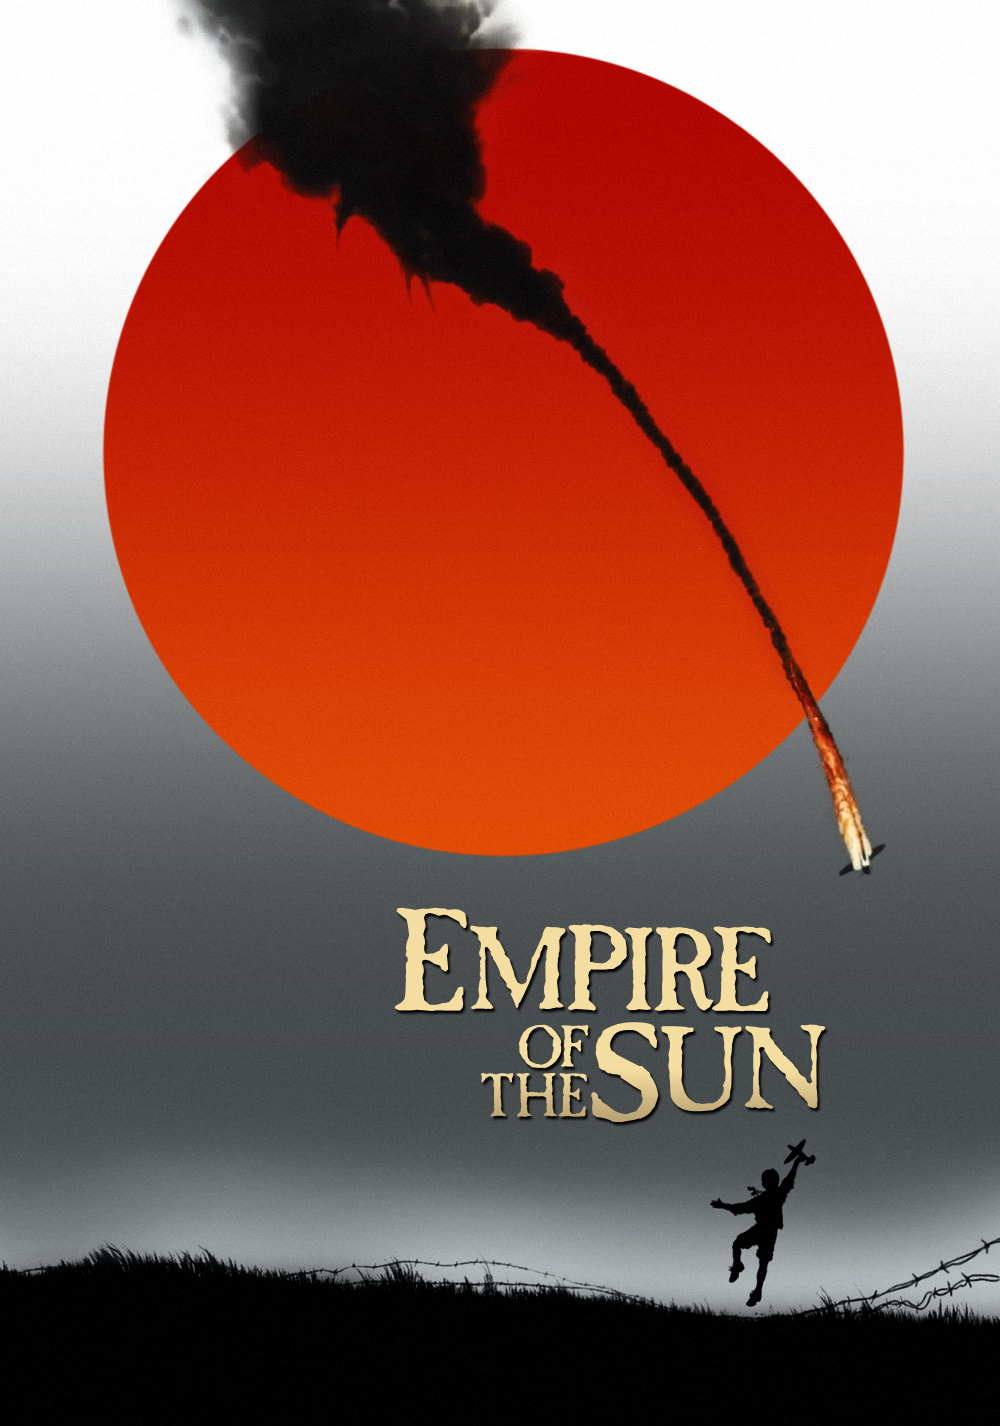 empire of the sun essay example The sun also rises and empire of the sun essay example - essay rough draft in a world of chaos and conflict the value of society is often demeaned warfare affects the difficulty of coping mechanisms and leads to isolation and abandonment.